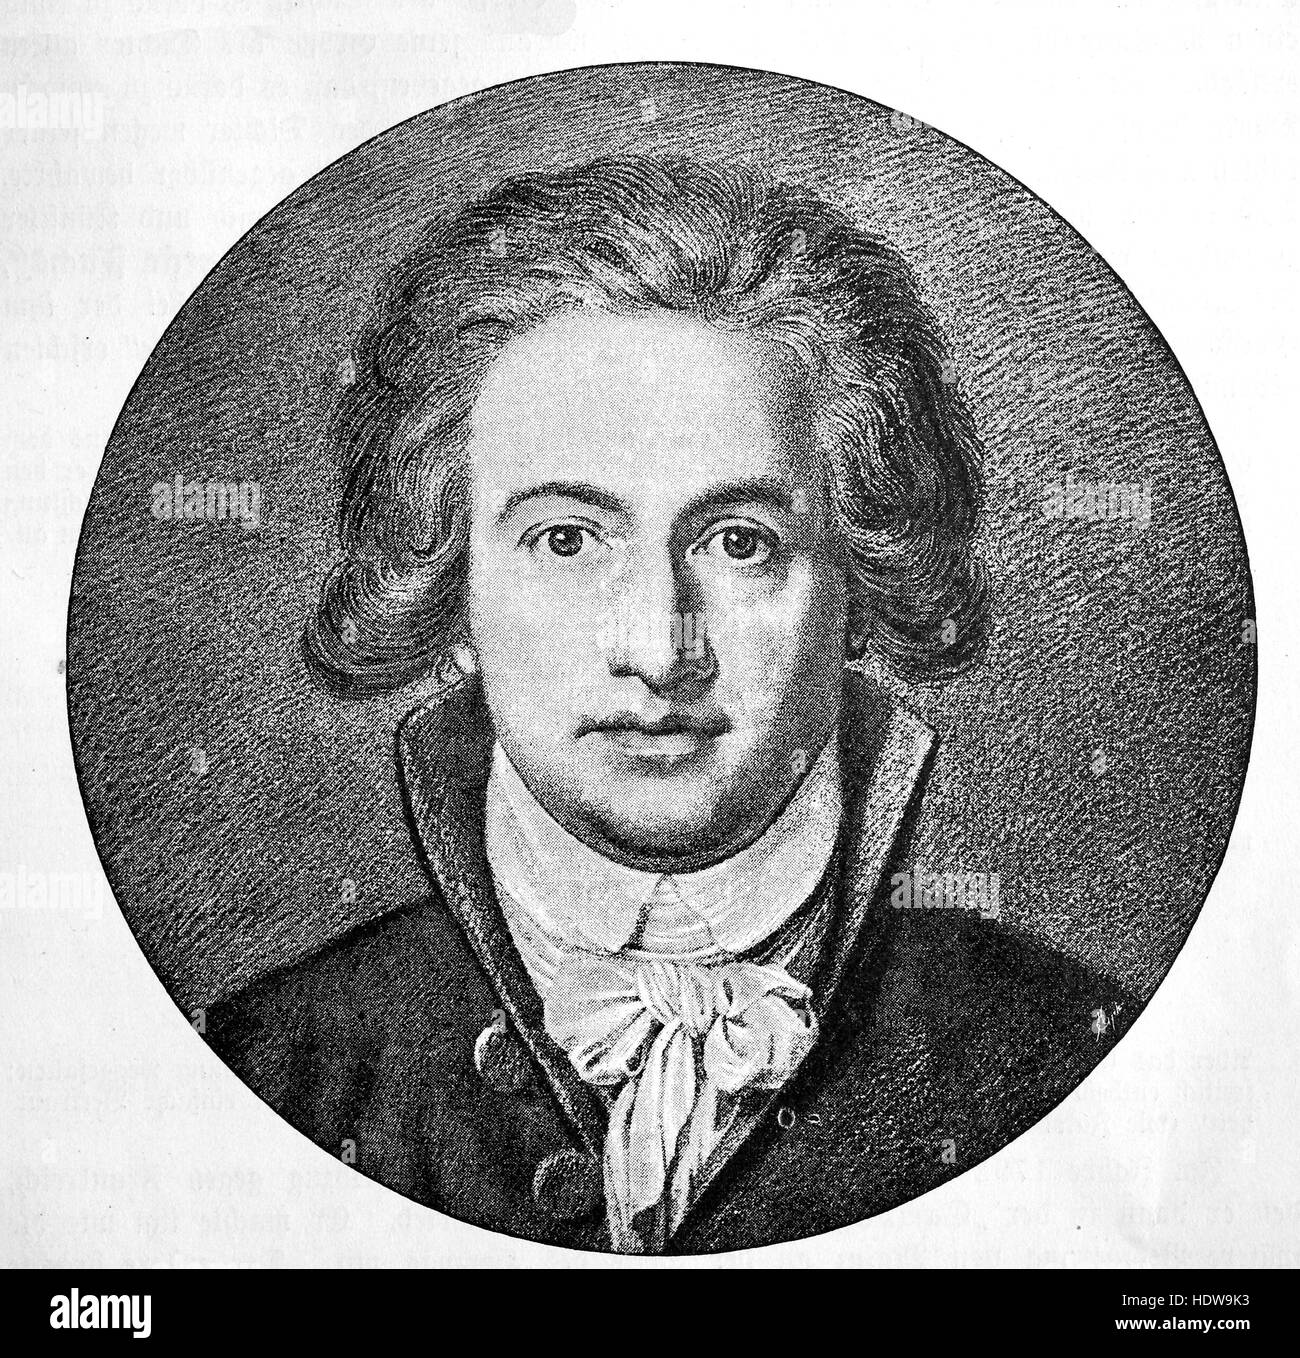 Johann Wolfgang von Goethe 42 years old, 1749-1832, a German writer and statesman, woodcut from the year 1880 - Stock Image